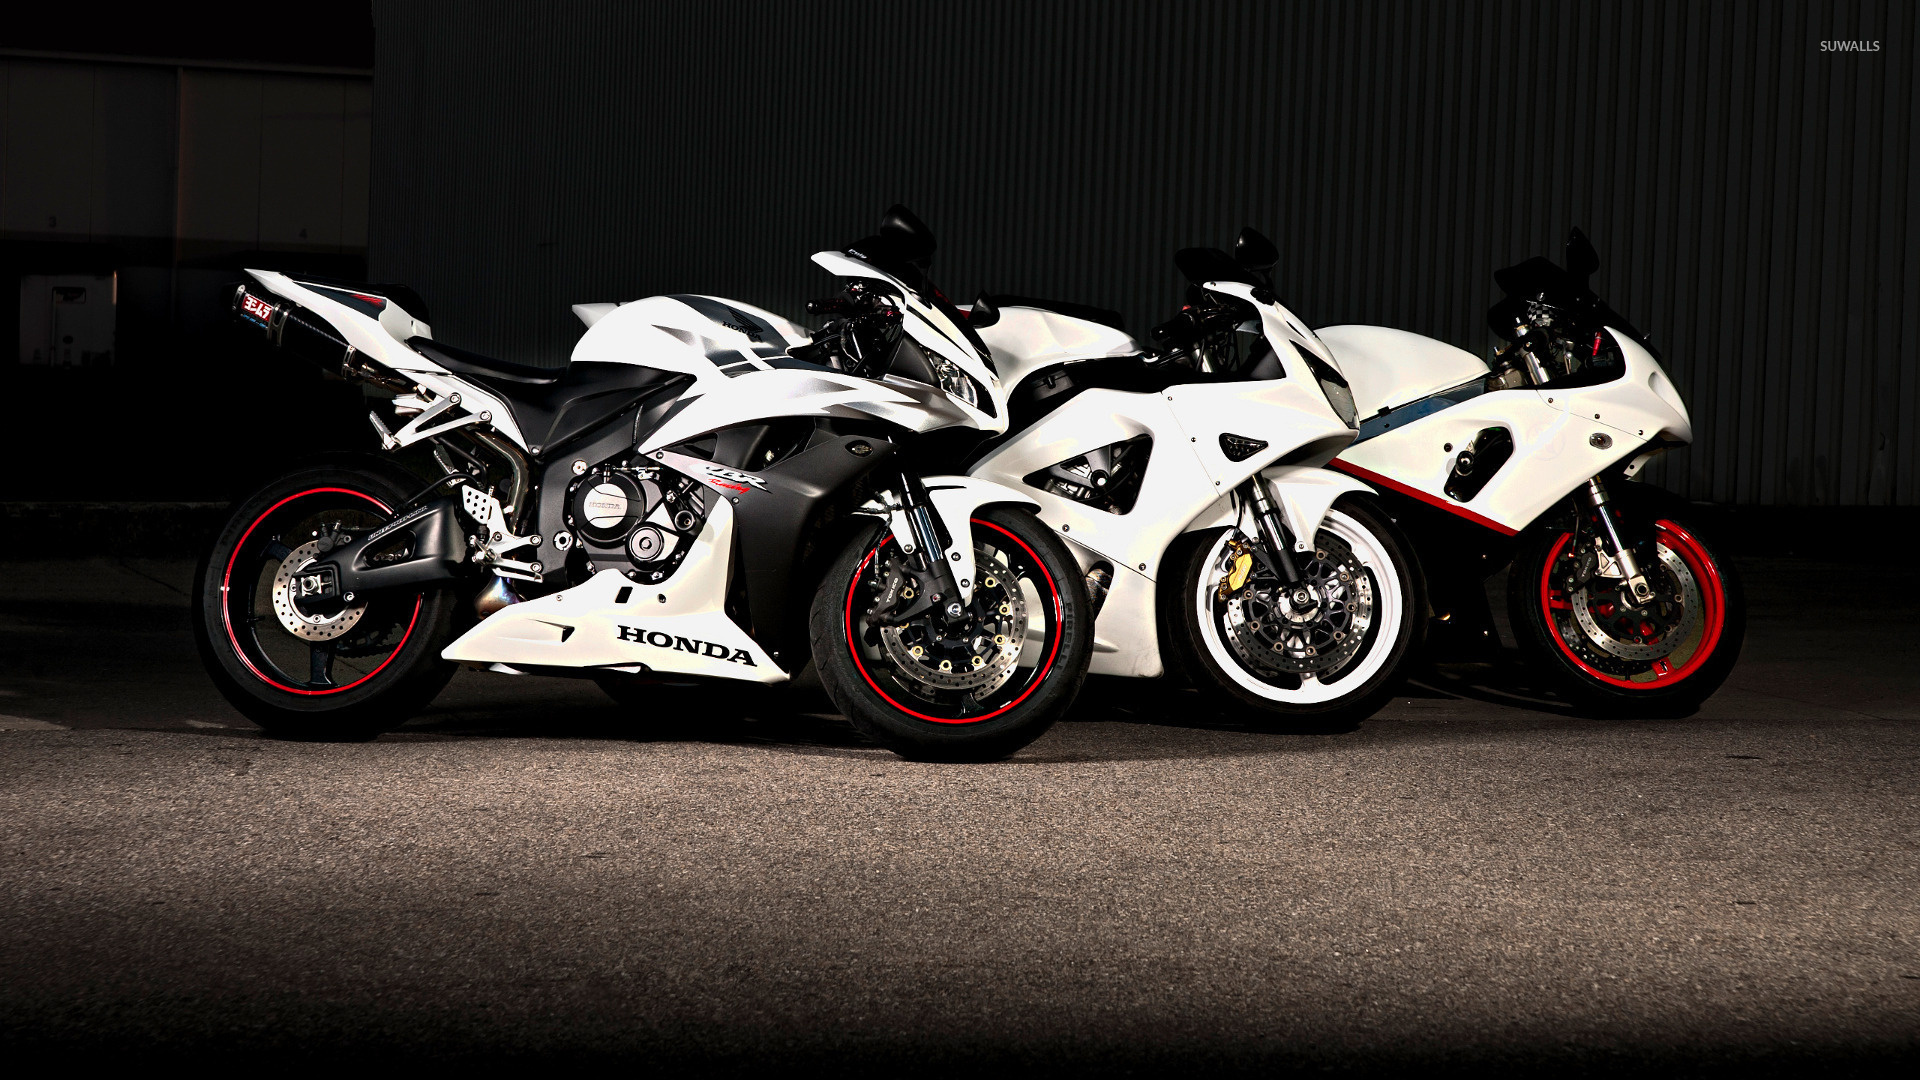 White Honda CBR Series Motorcycles Wallpaper